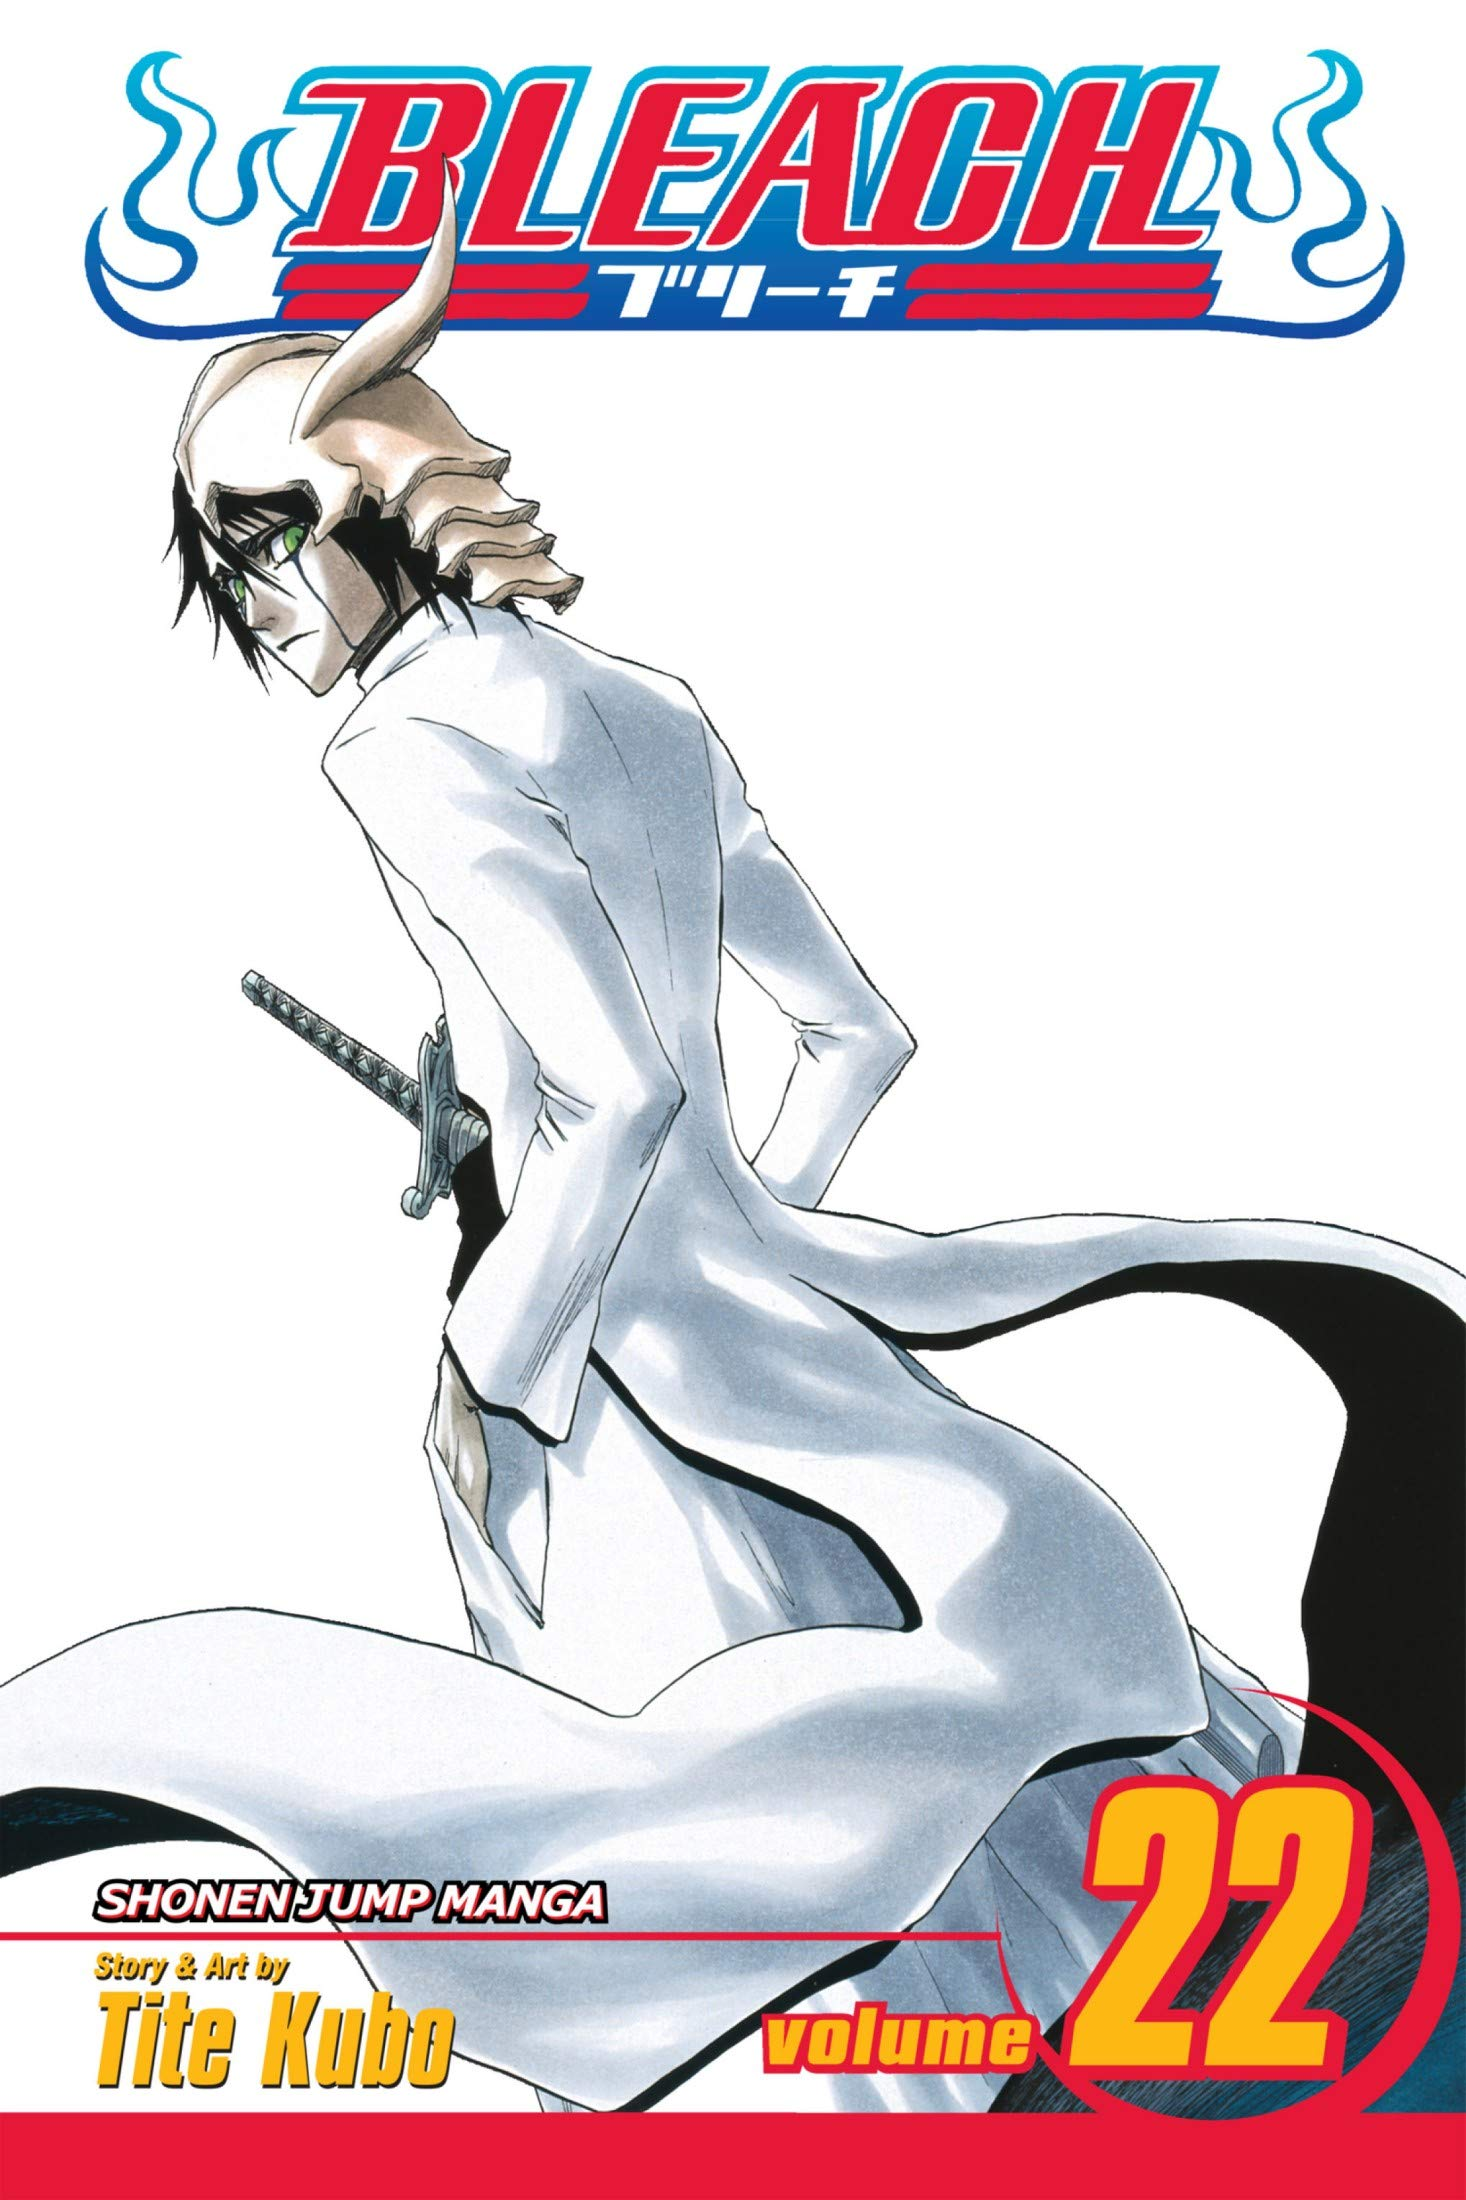 Bleac: Book 22 Includes Vol 64 -65 - Great Bleach Action Graphic Novel Manga For Teens , Adults, Fan